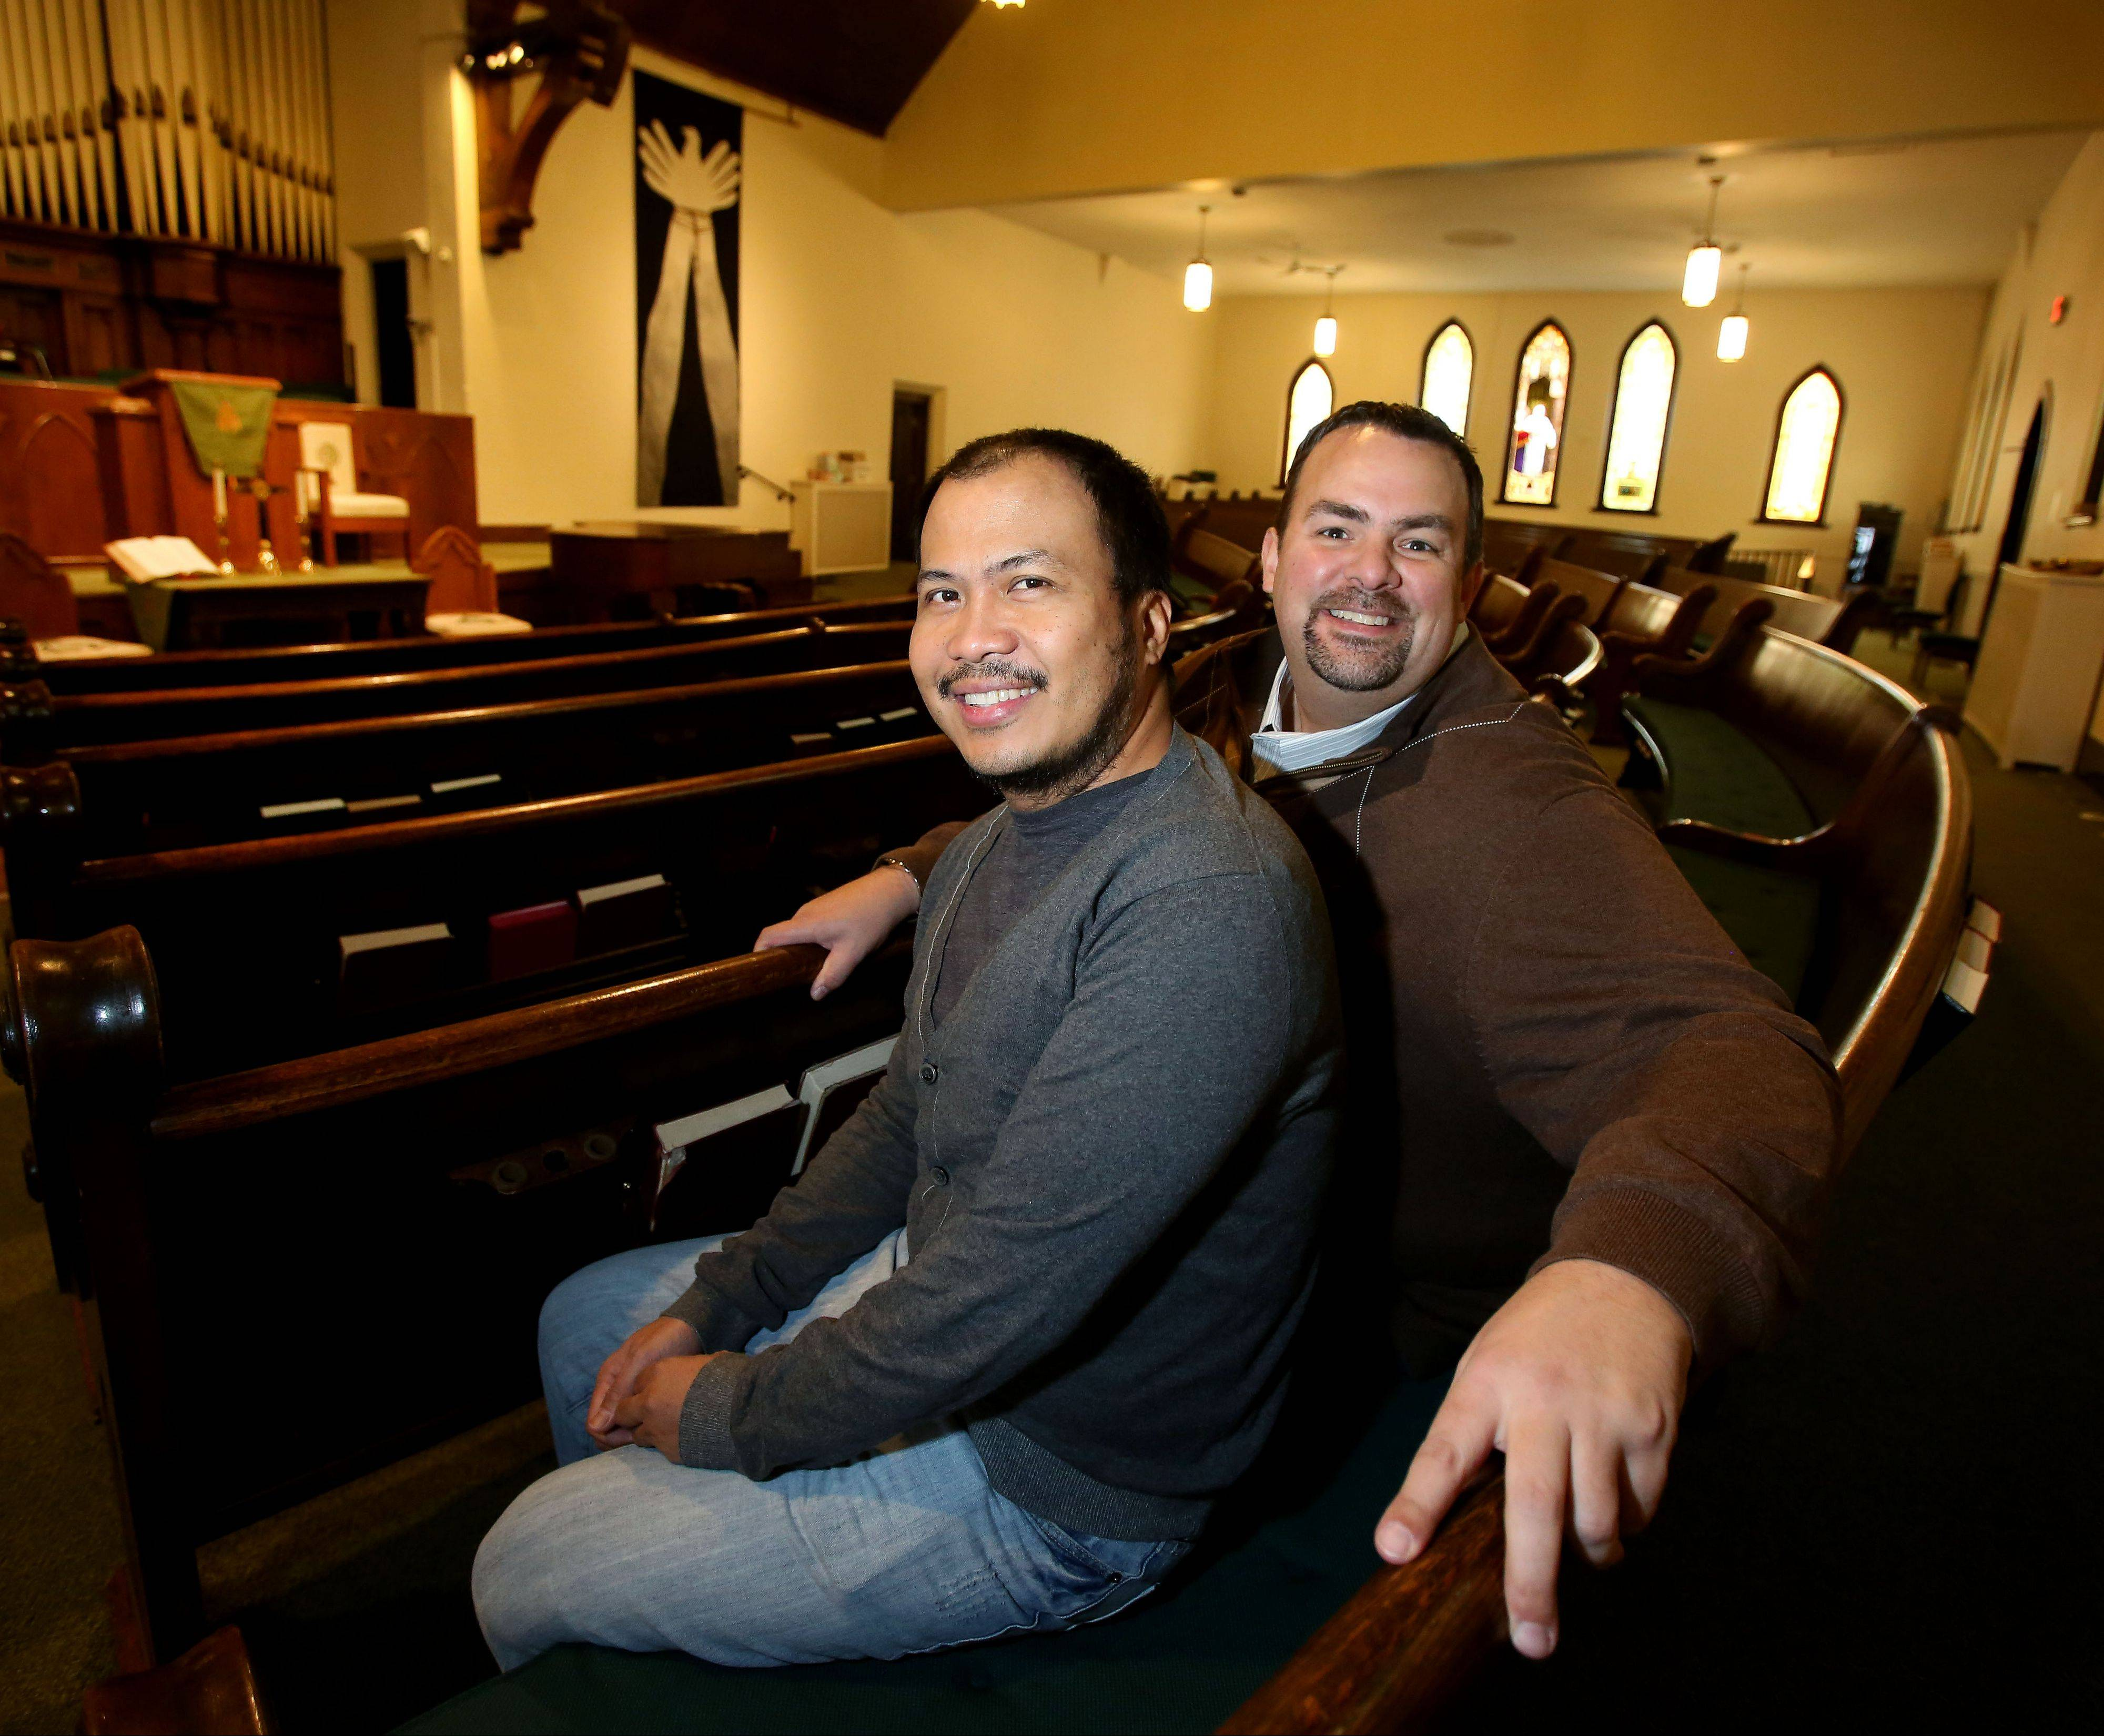 Jovi Tomaneng, left, and John Stilp, right, of Naperville will be getting married in August at First Congregational United Church of Christ in Naperville. The couple say they wanted to have a religious ceremony for their wedding.